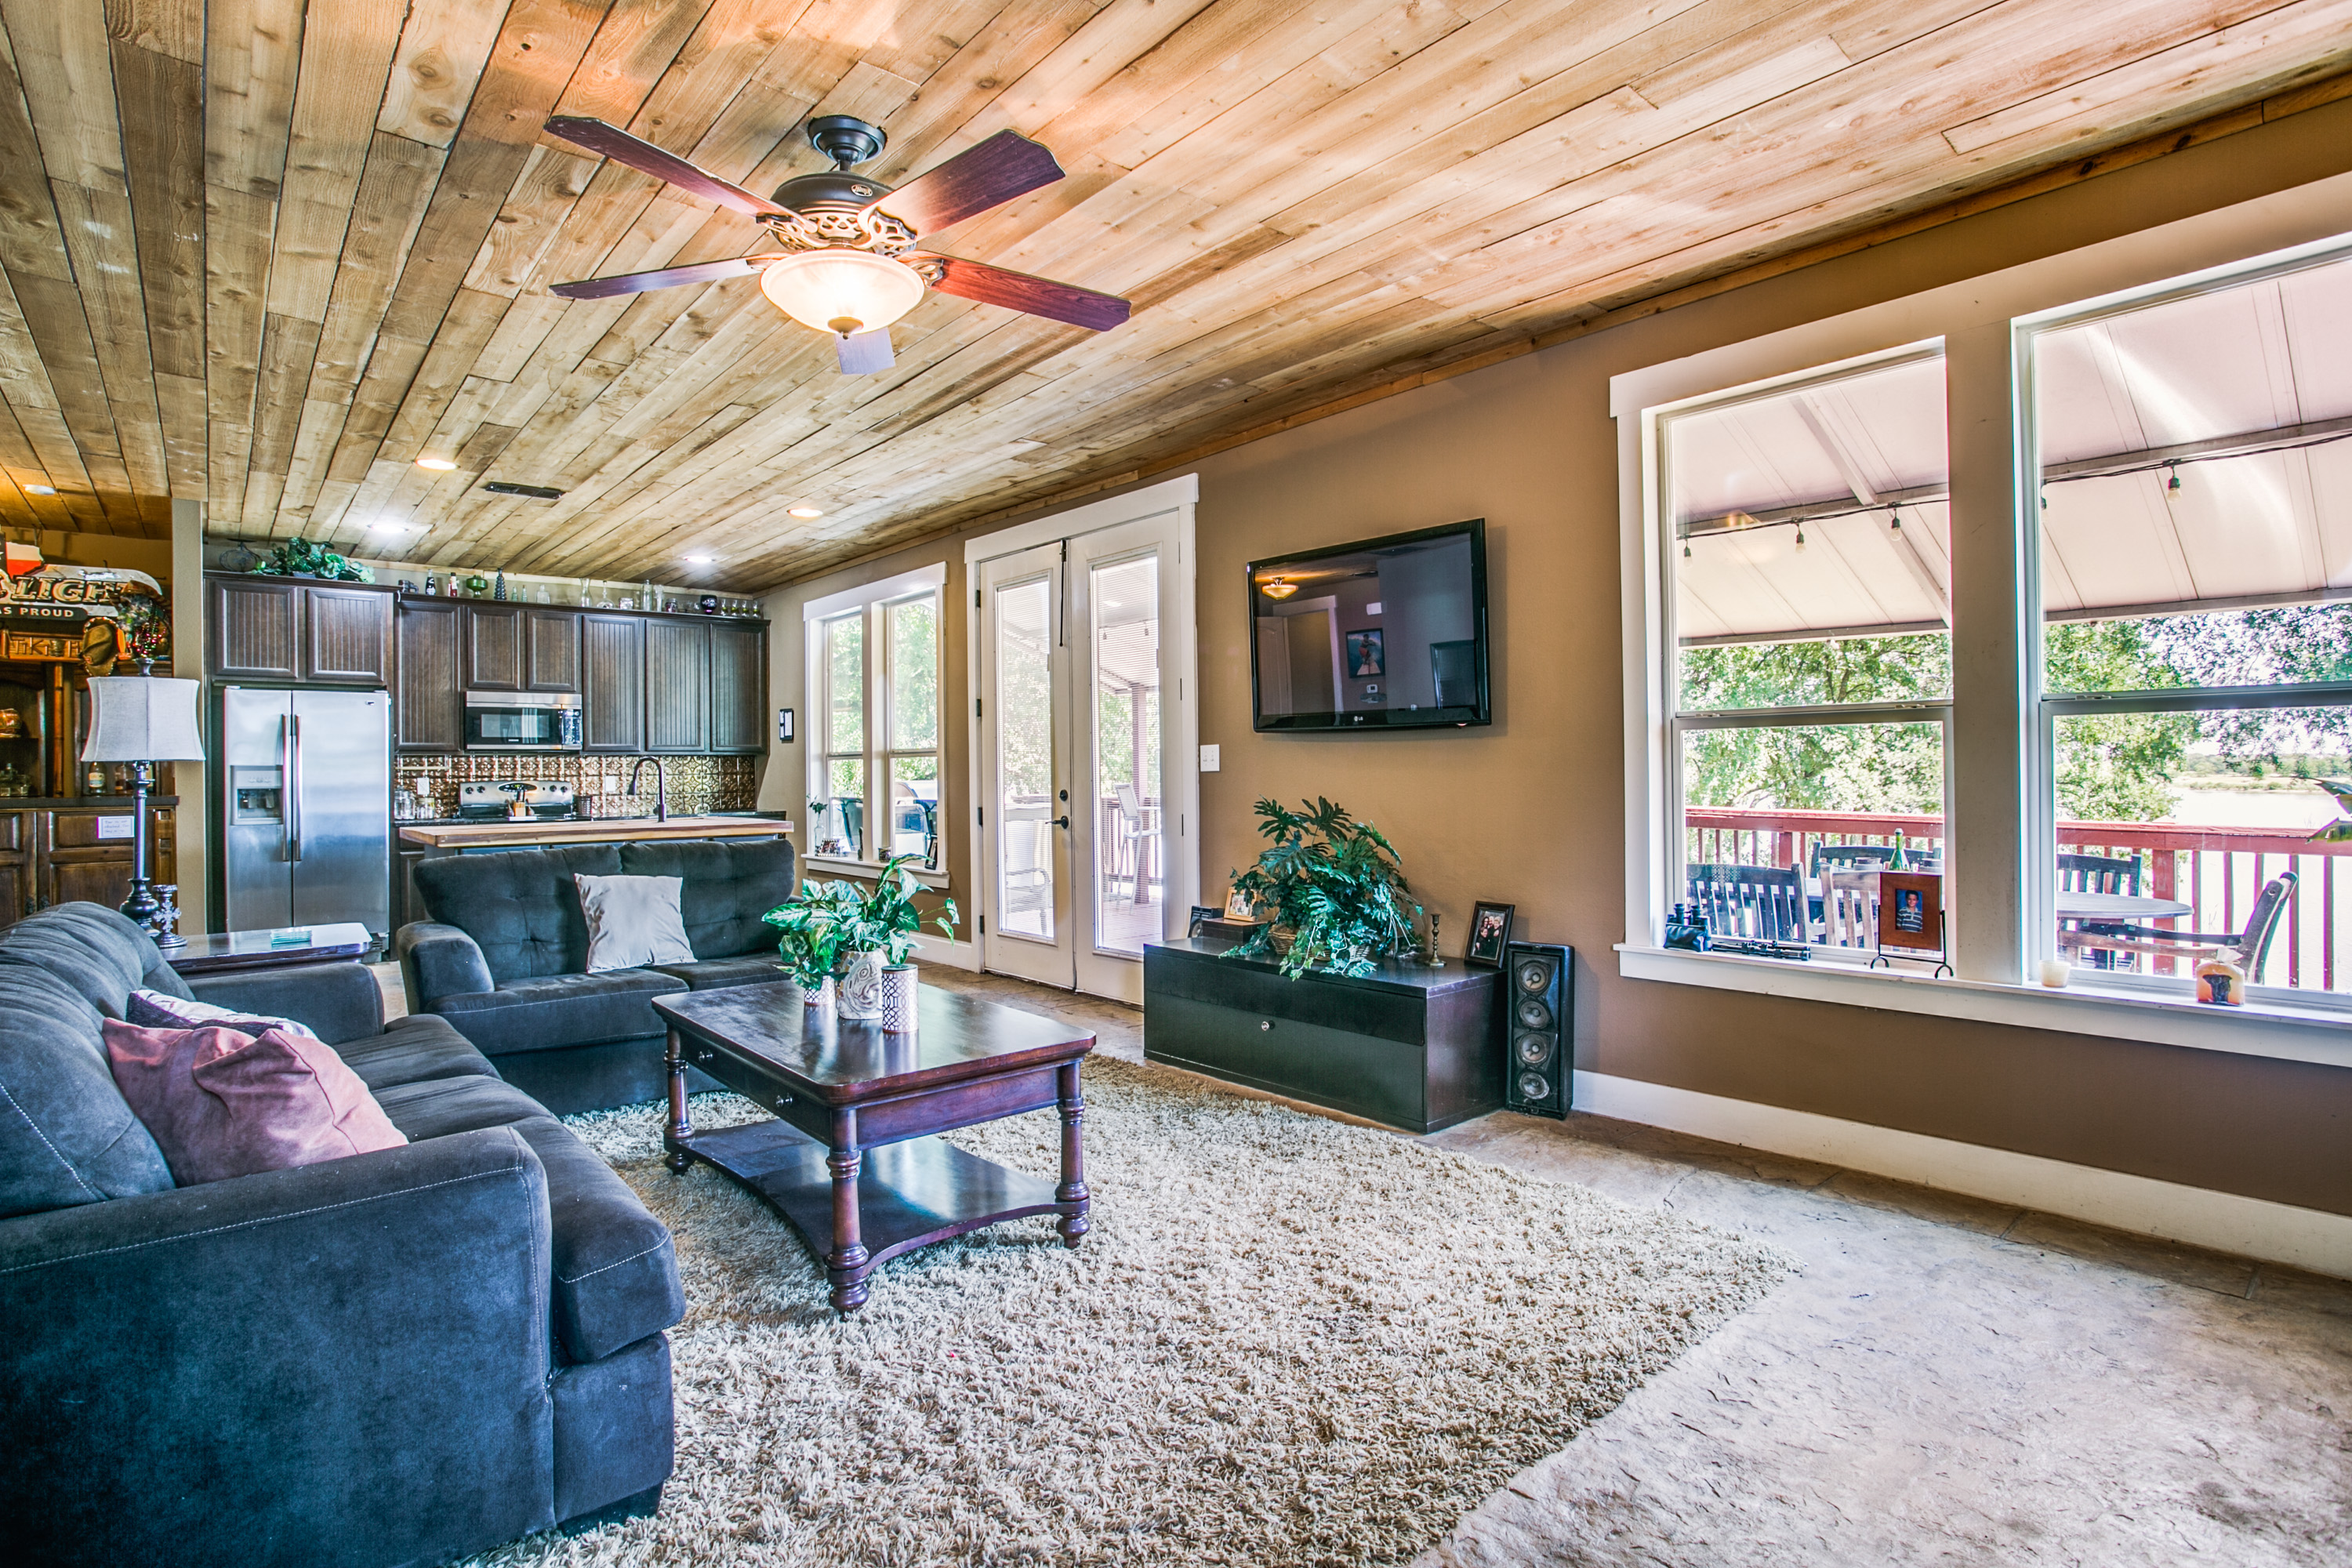 The 1st floor lake room & covered deck are perfect for any lake party! Builder John McFadden captures the natural beauty of the surrounding area & brings it indoors using high-quality materials & a one-of-a-kind build.